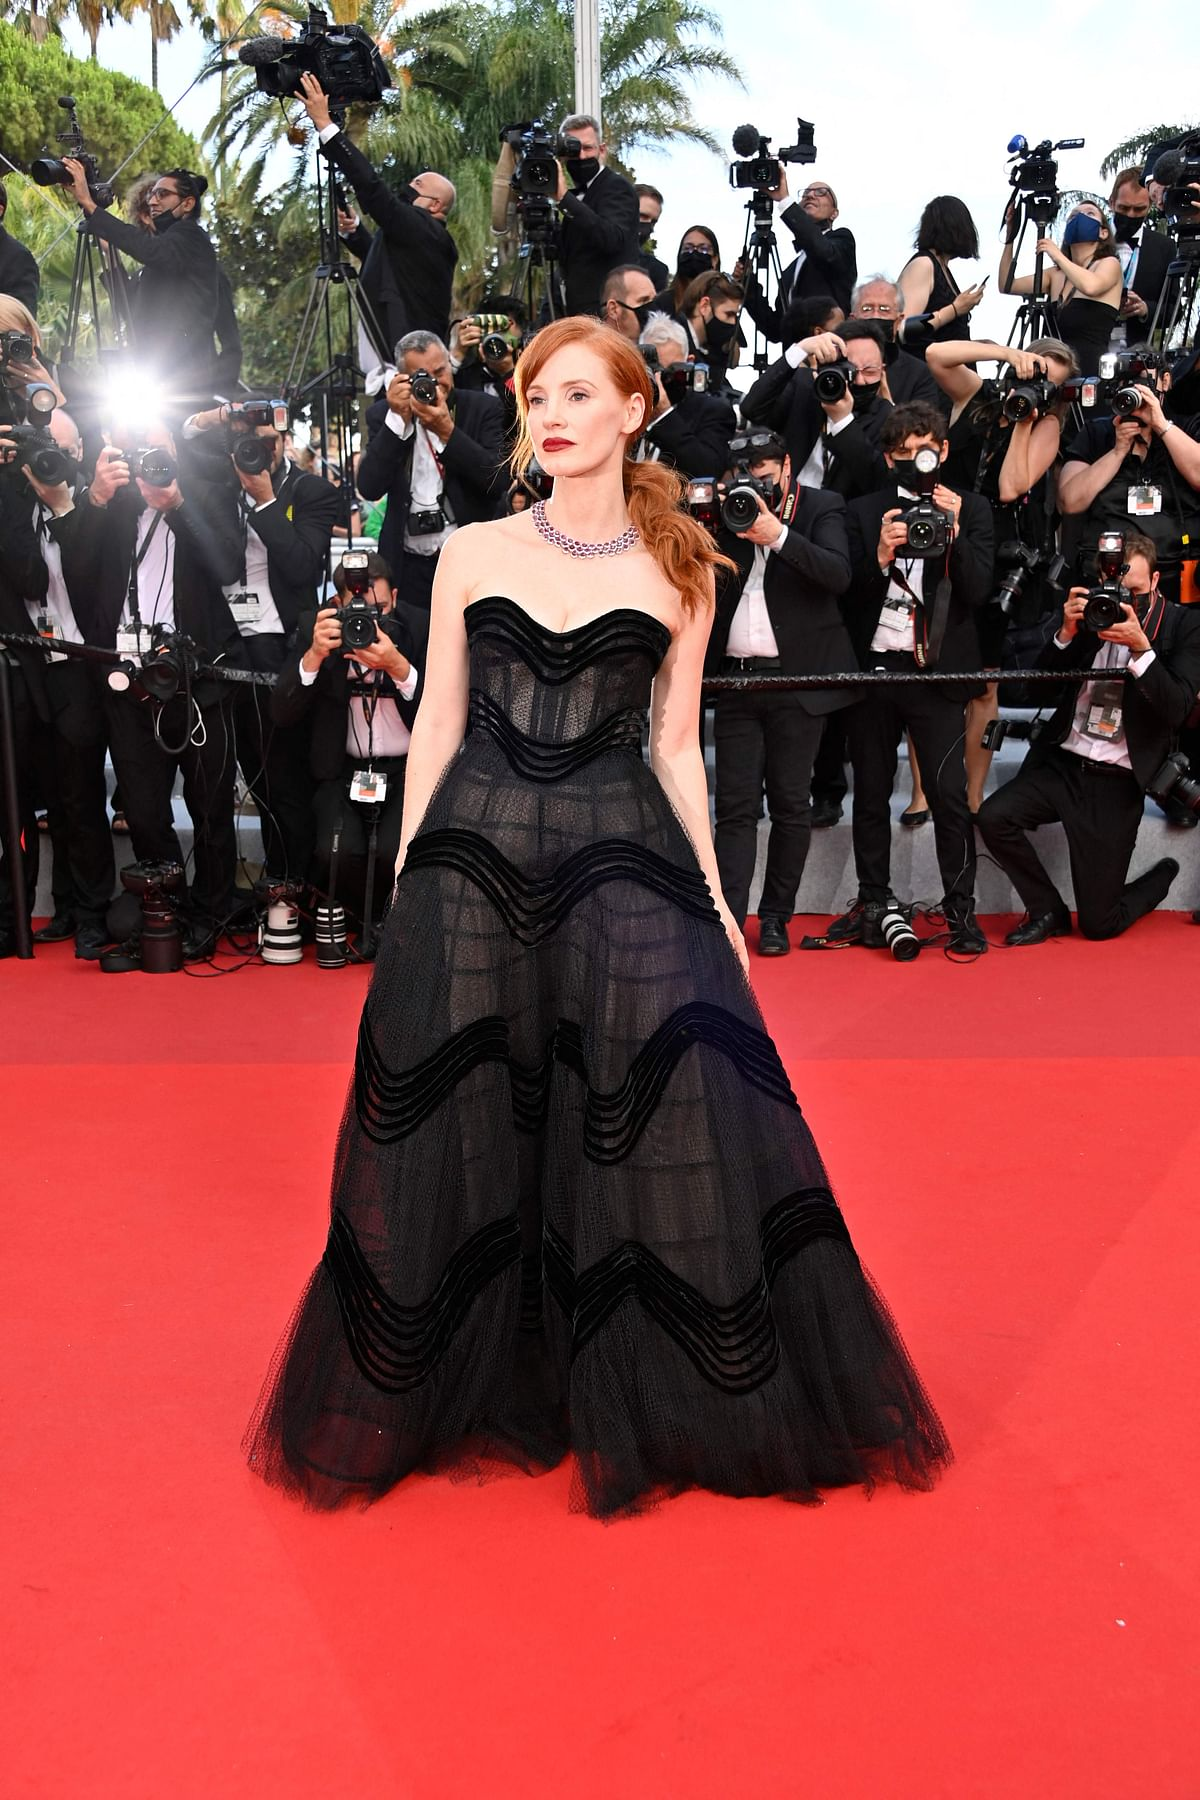 """US actress Jessica Chastain arrives for the opening ceremony and the screening of the film """"Annette"""" at the 74th edition of the Cannes Film Festival in Cannes, southern France, on July 6, 2021. (Photo by John MACDOUGALL / AFP)"""